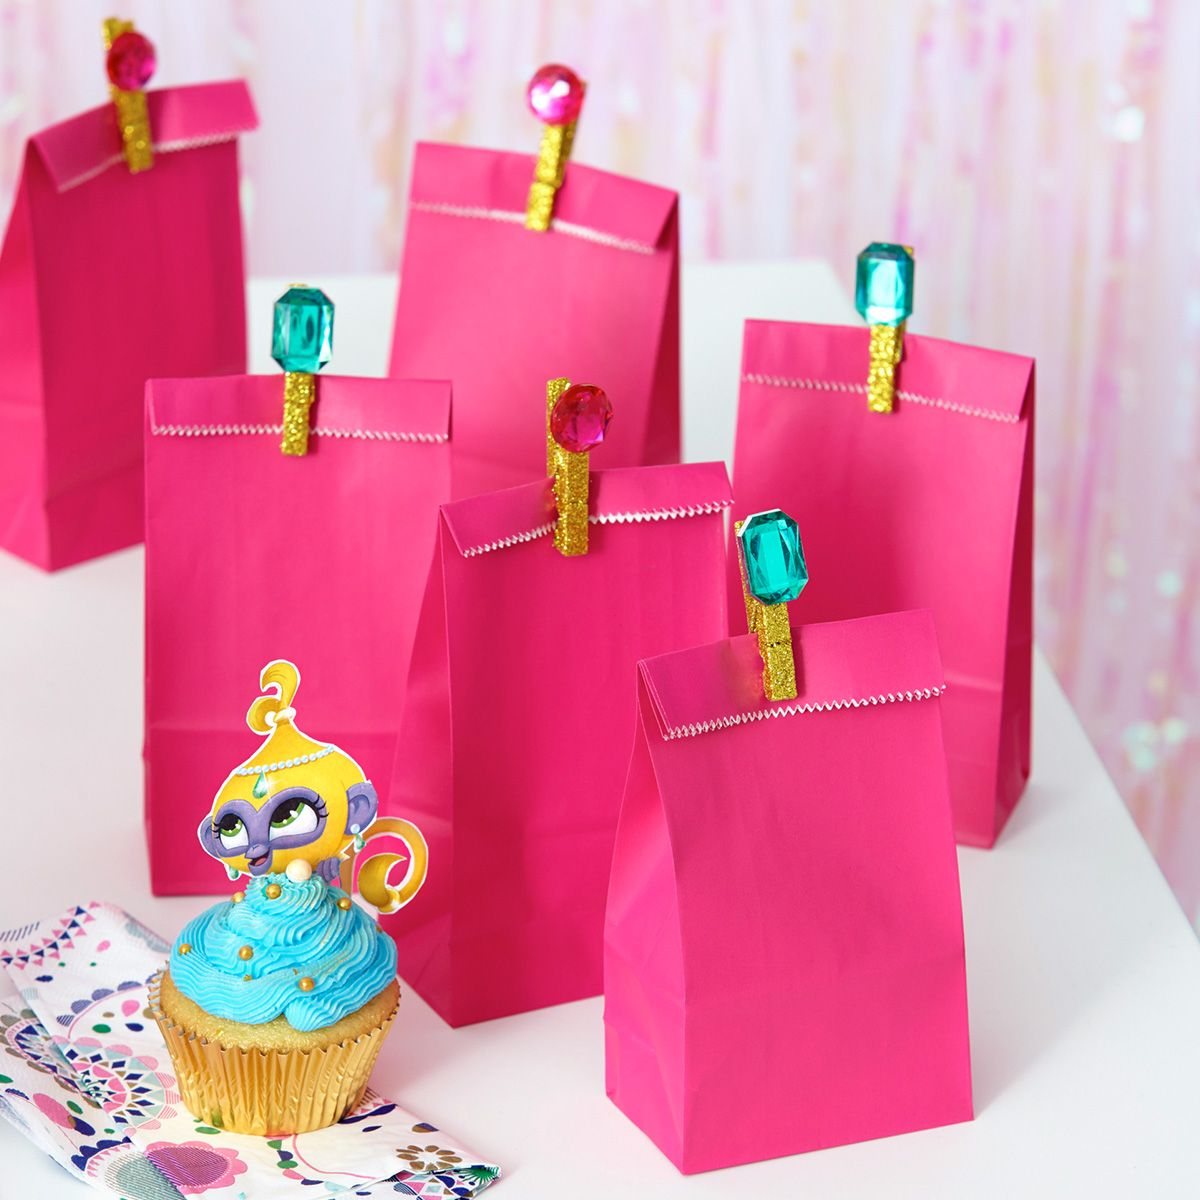 Plan a Shimmer and Shine Birthday Party | Clipart, Fiestas y Cumpleaños